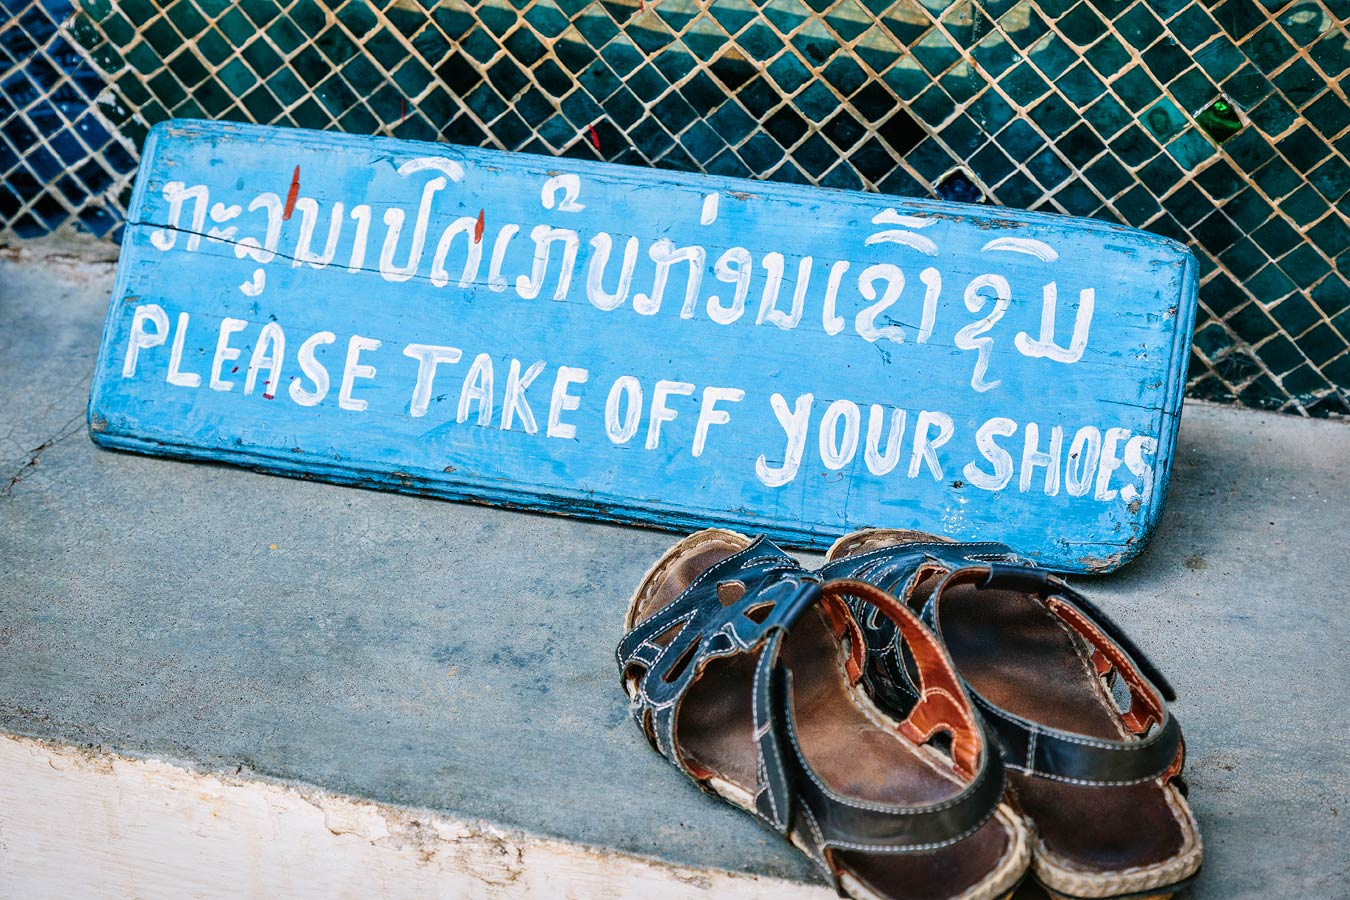 Laos travel photography by Sharon Blance, Melbourne photographer